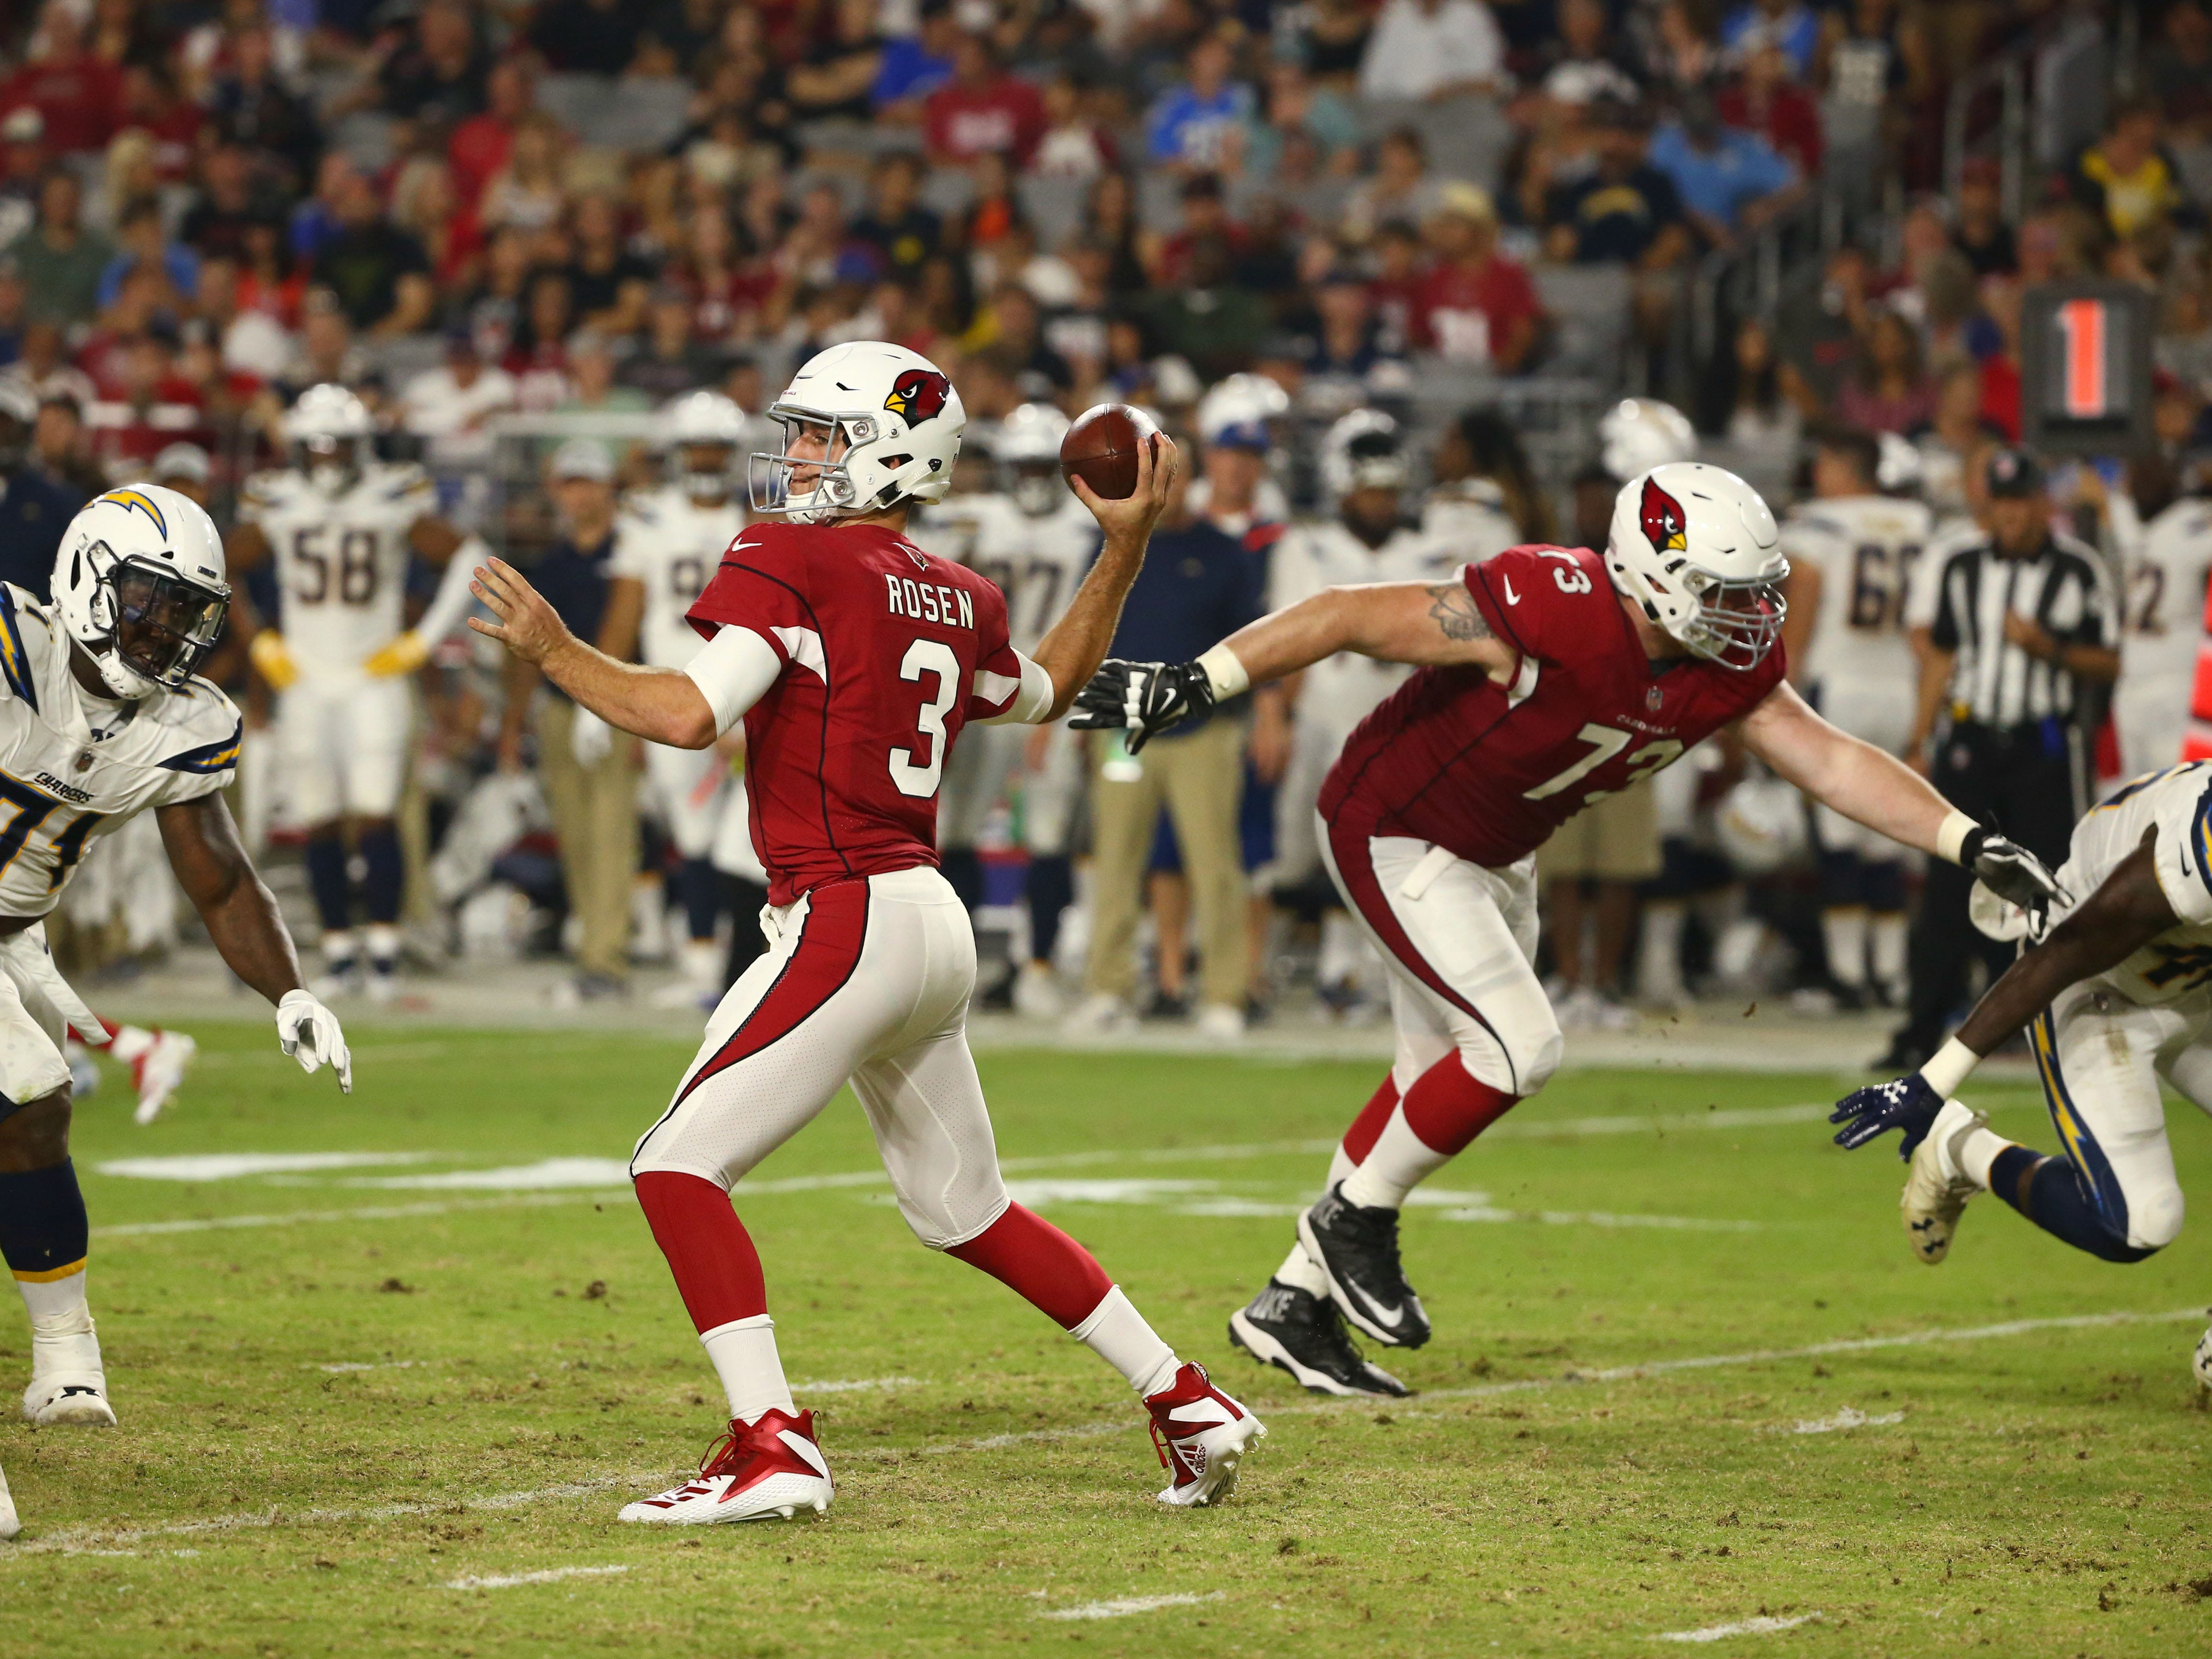 Arizona Cardinals Josh Rosen throw a pass against the L.A. Chargers in the first half during a preseason NFL football game on Aug. 11, 2018 at University of Phoenix Stadium in Glendale, Ariz.